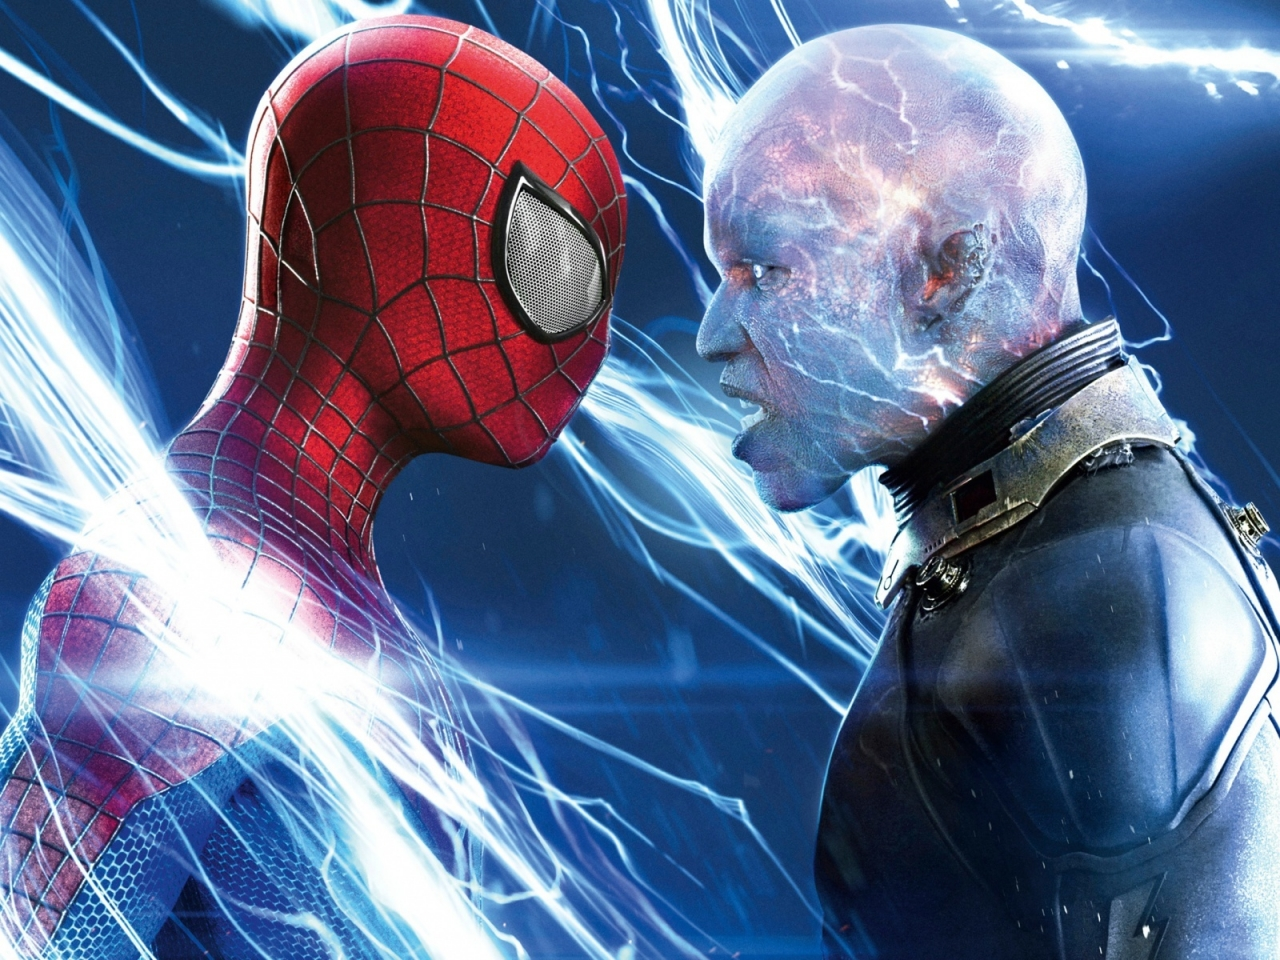 Spiderman vs Electro for 1280 x 960 resolution